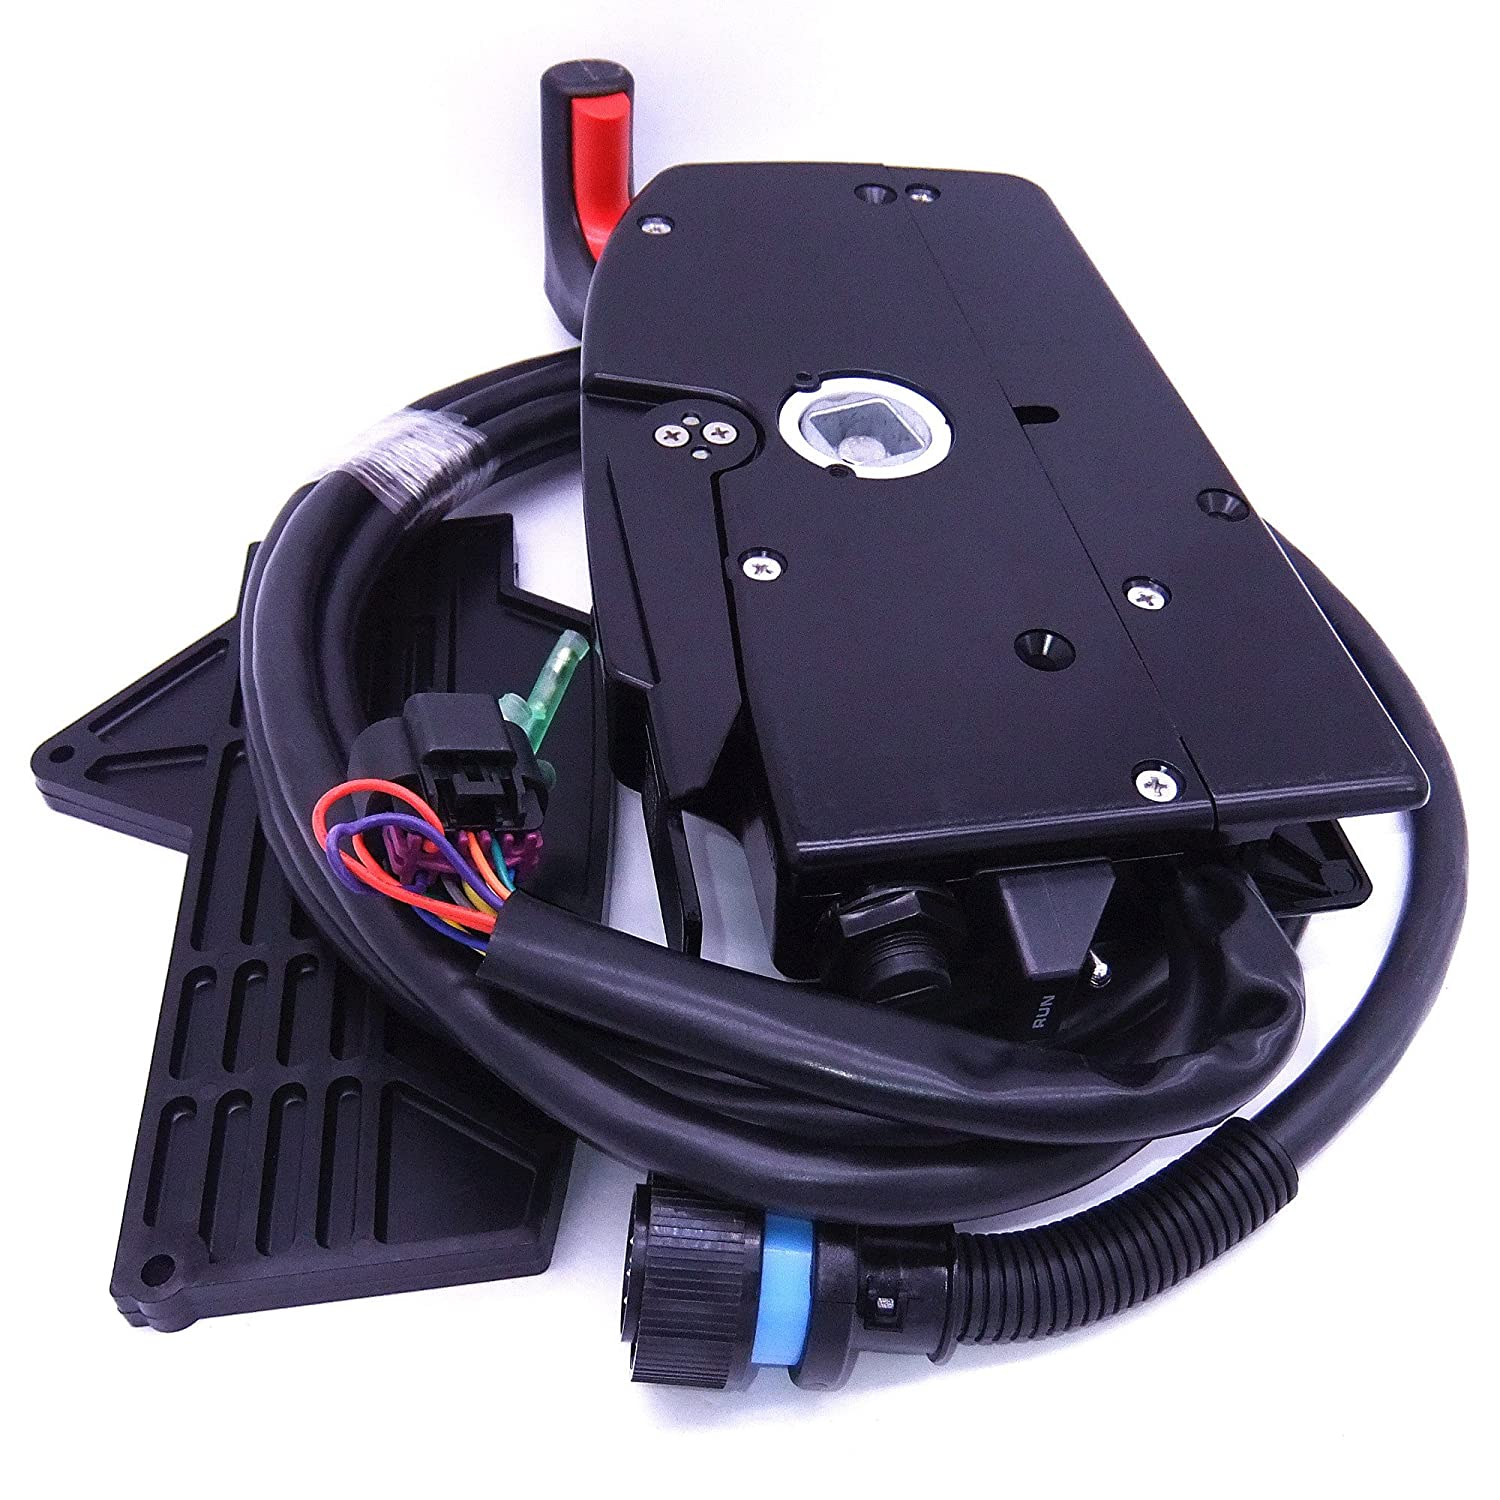 Amazon.com : 881170A13 Boat Motor Side Mount Remote Control Box with 14 Pin  for Mercury Outboard Engine 14Pin, Right Hand : Sports & Outdoors